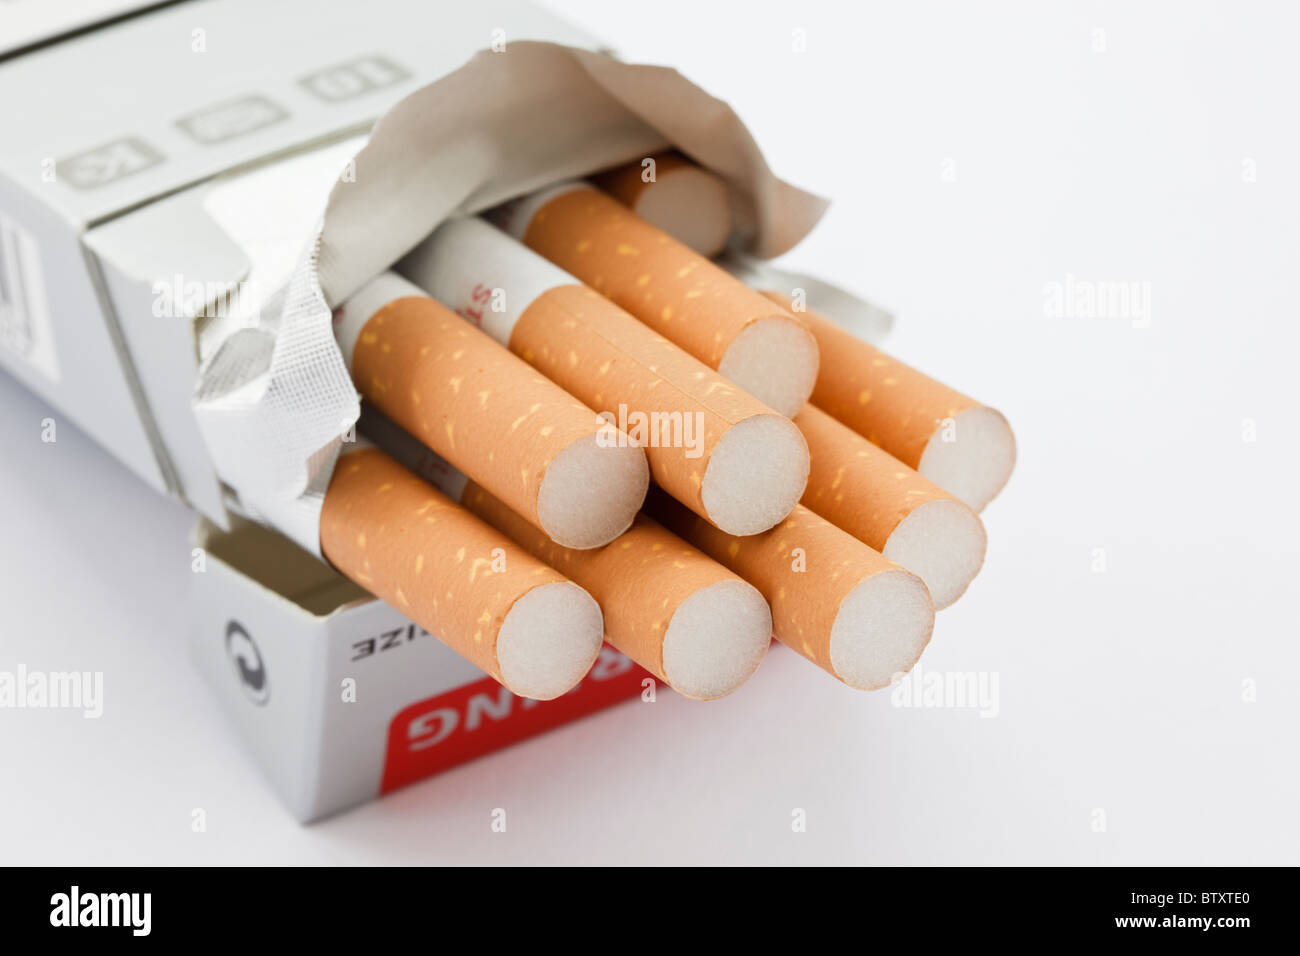 Major cigarettes Marlboro brands USA